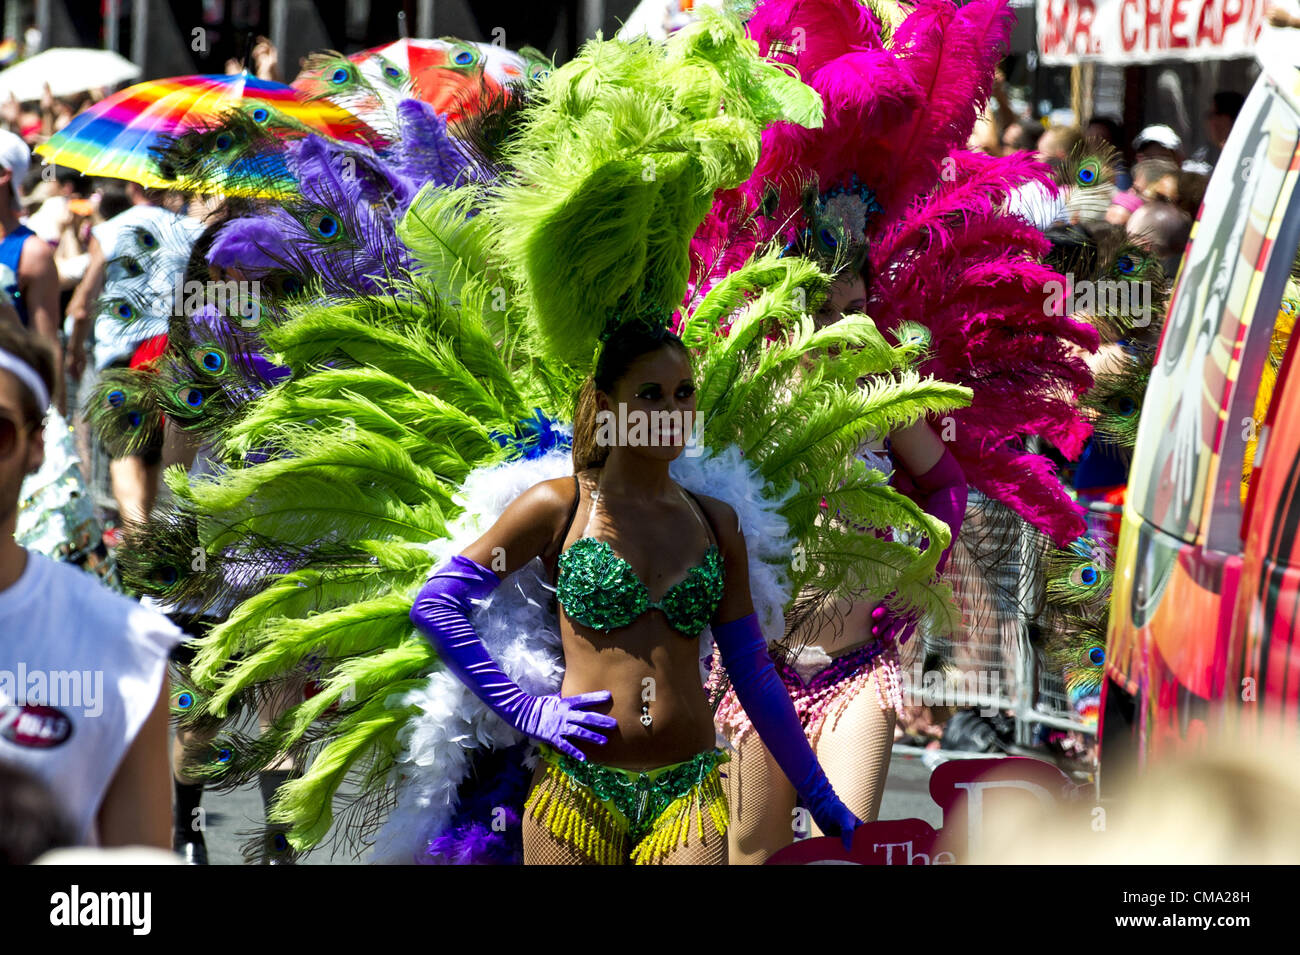 July 1, 2012 - Toronto, Ontario, Canada - The 32nd annual Toronto Pride Parade gathered hundreds of thousnads poeple - Stock Image